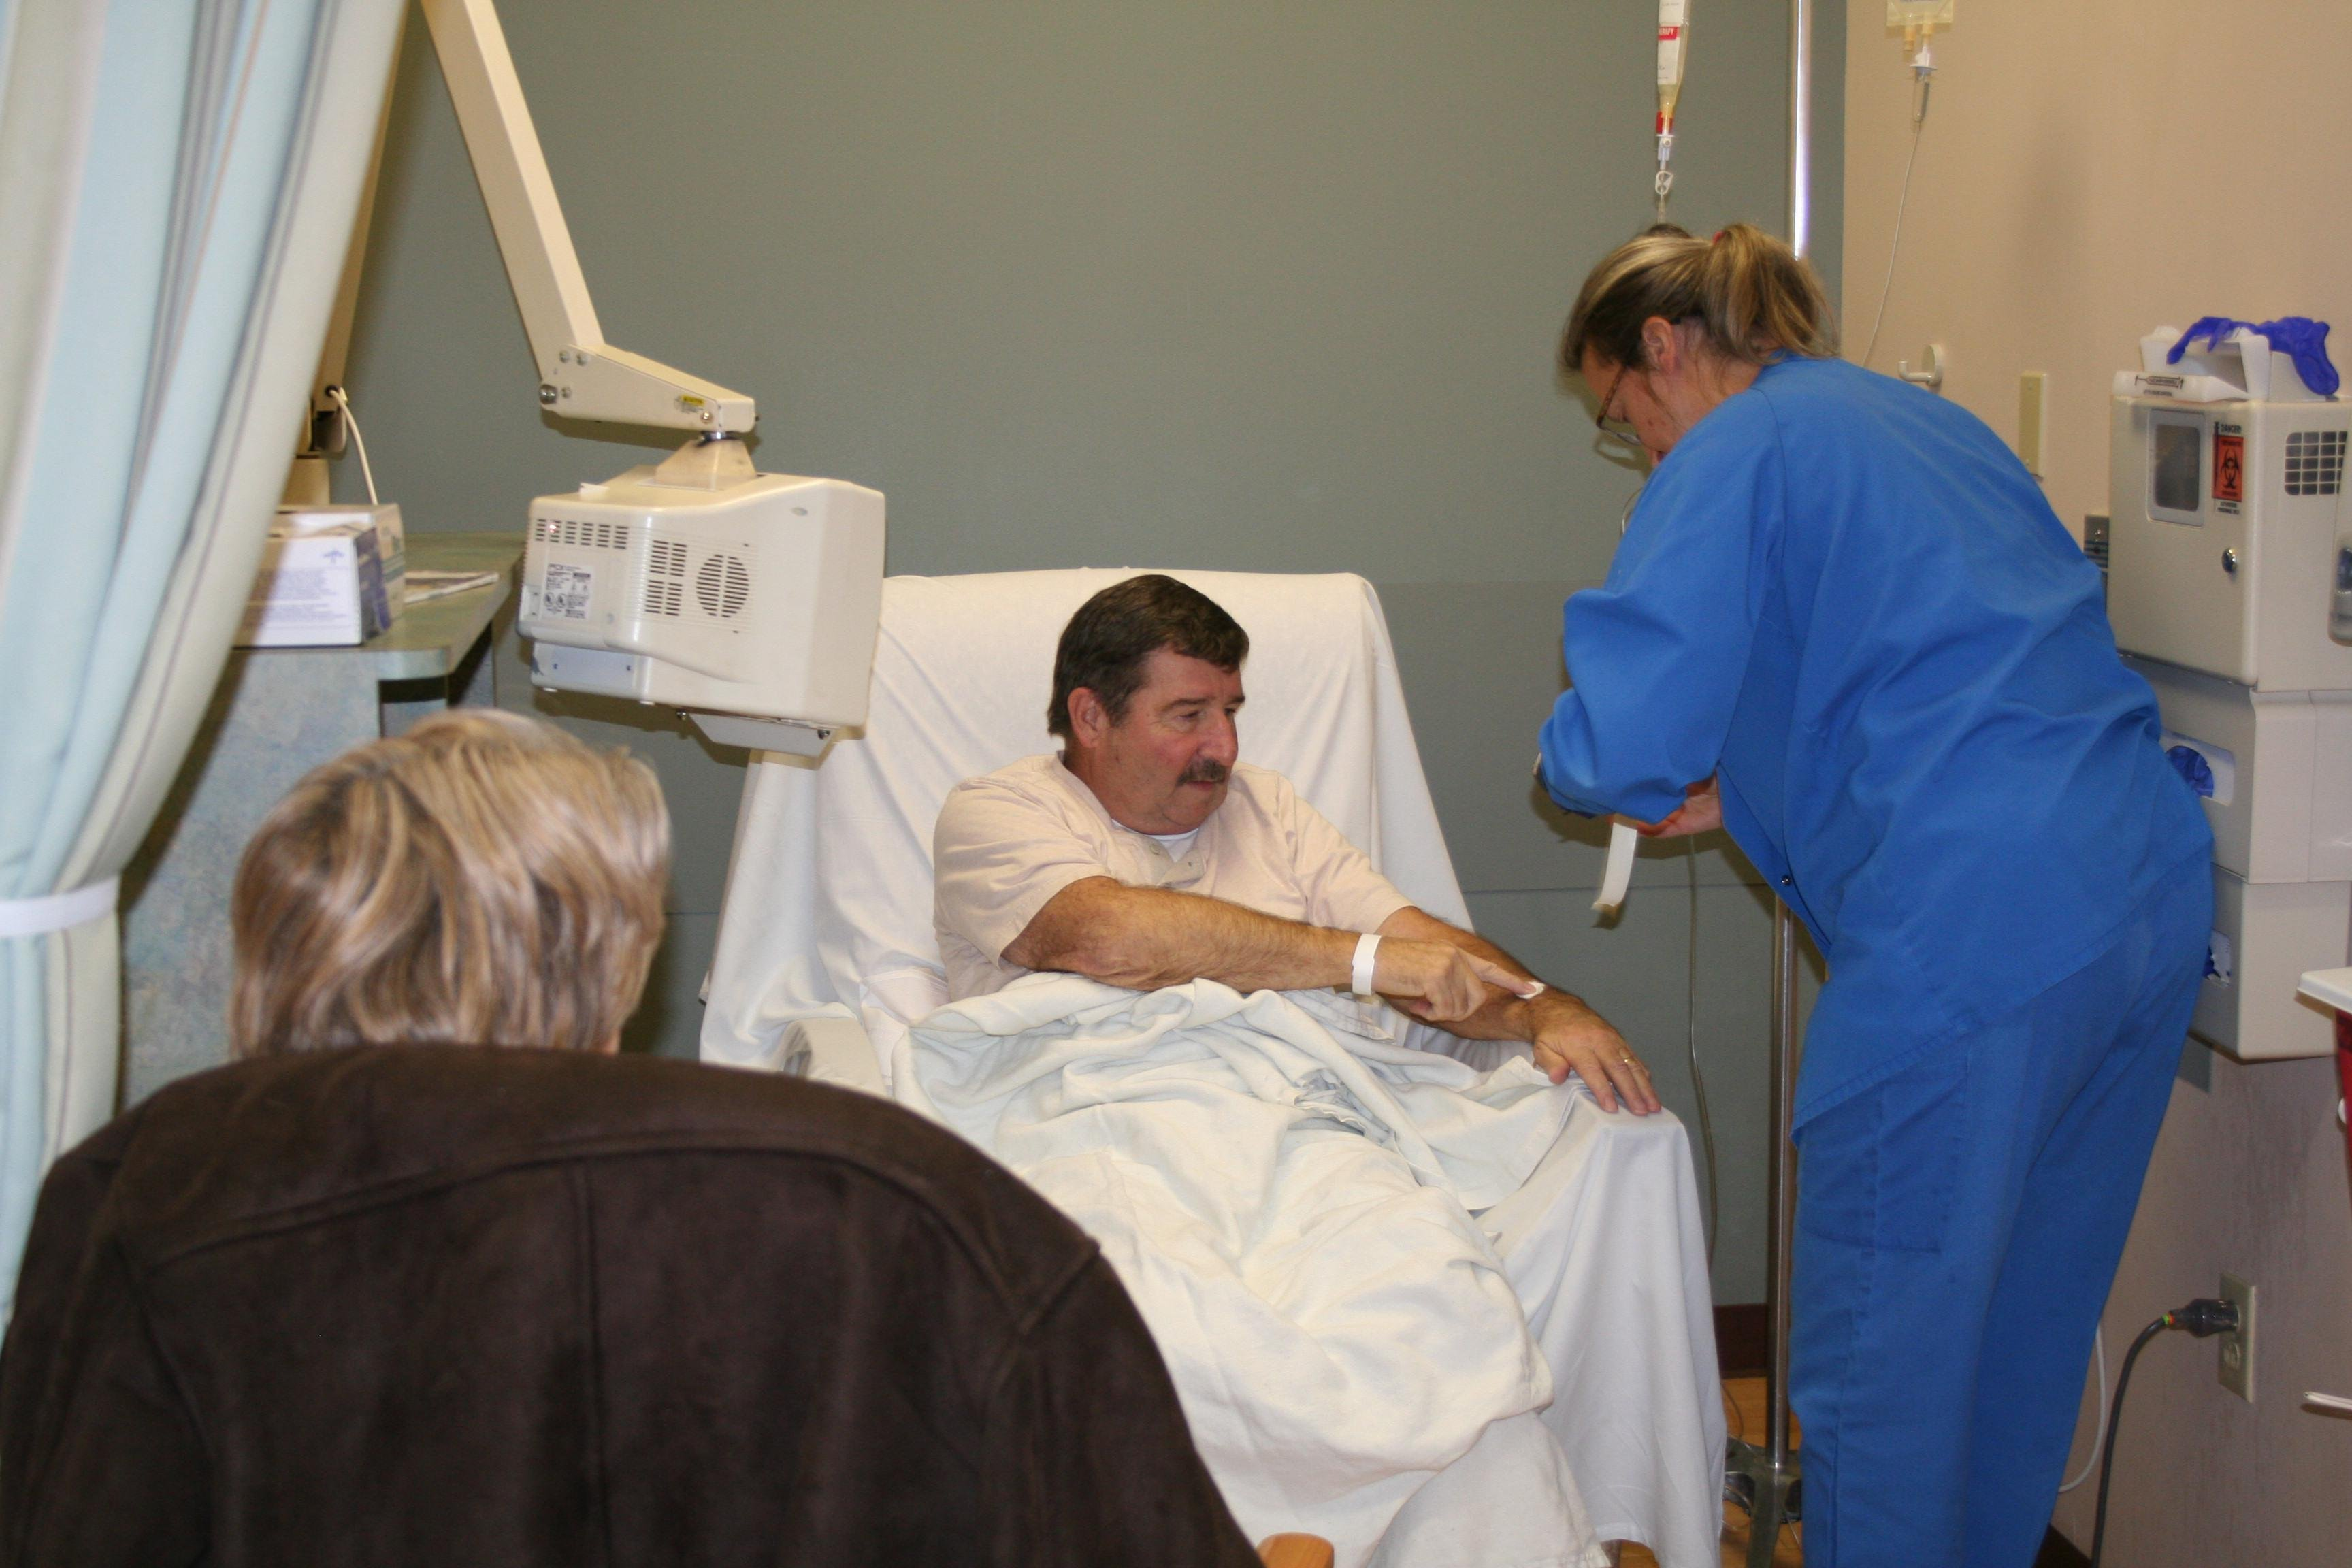 Photo courtesy of CAMC. Hurricane resident Steve Sovine receives treatment at the David Lee Cancer Center.